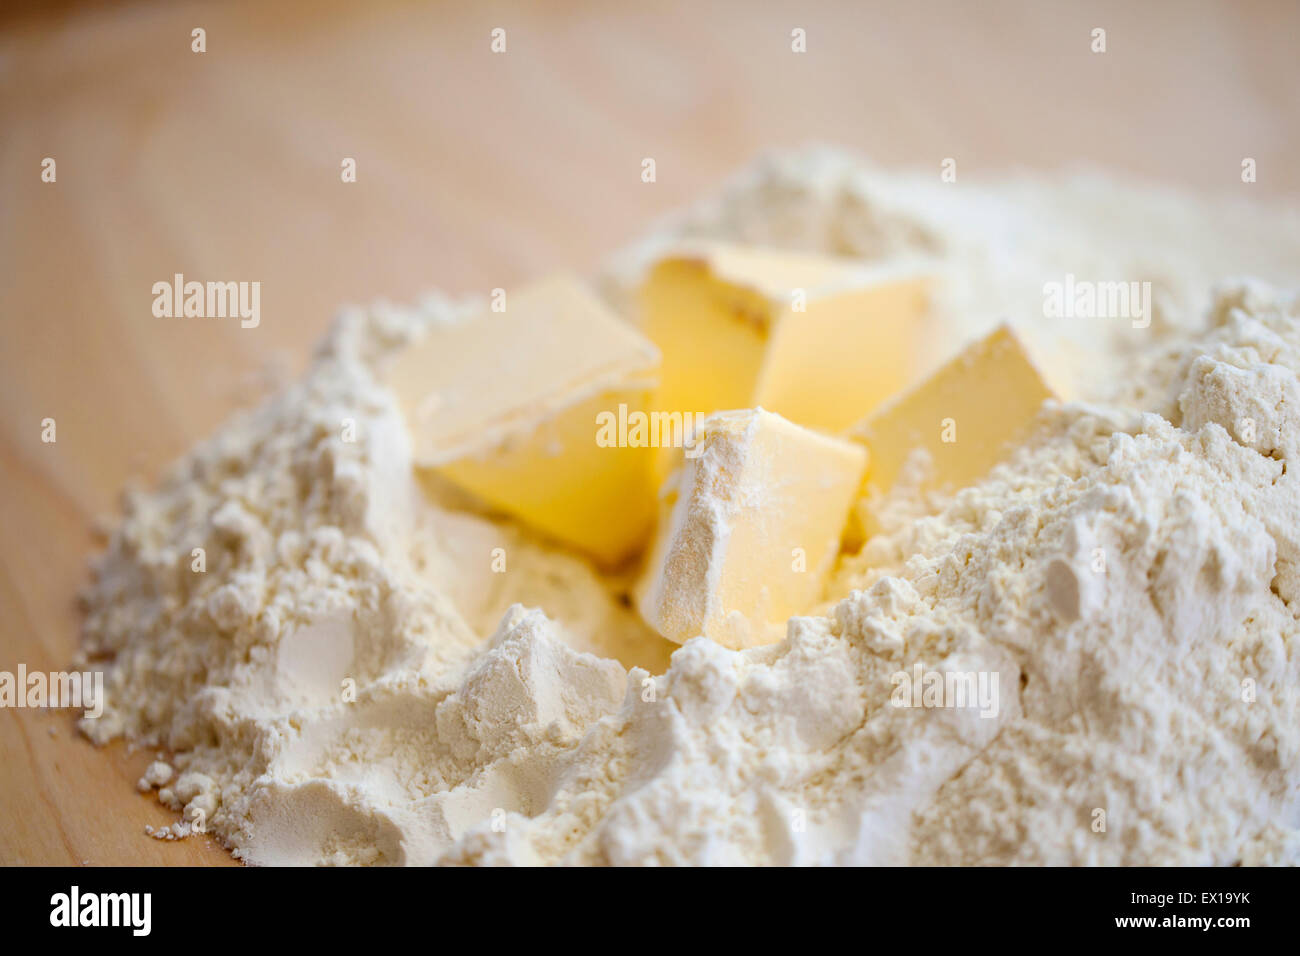 Flour and butter - Stock Image